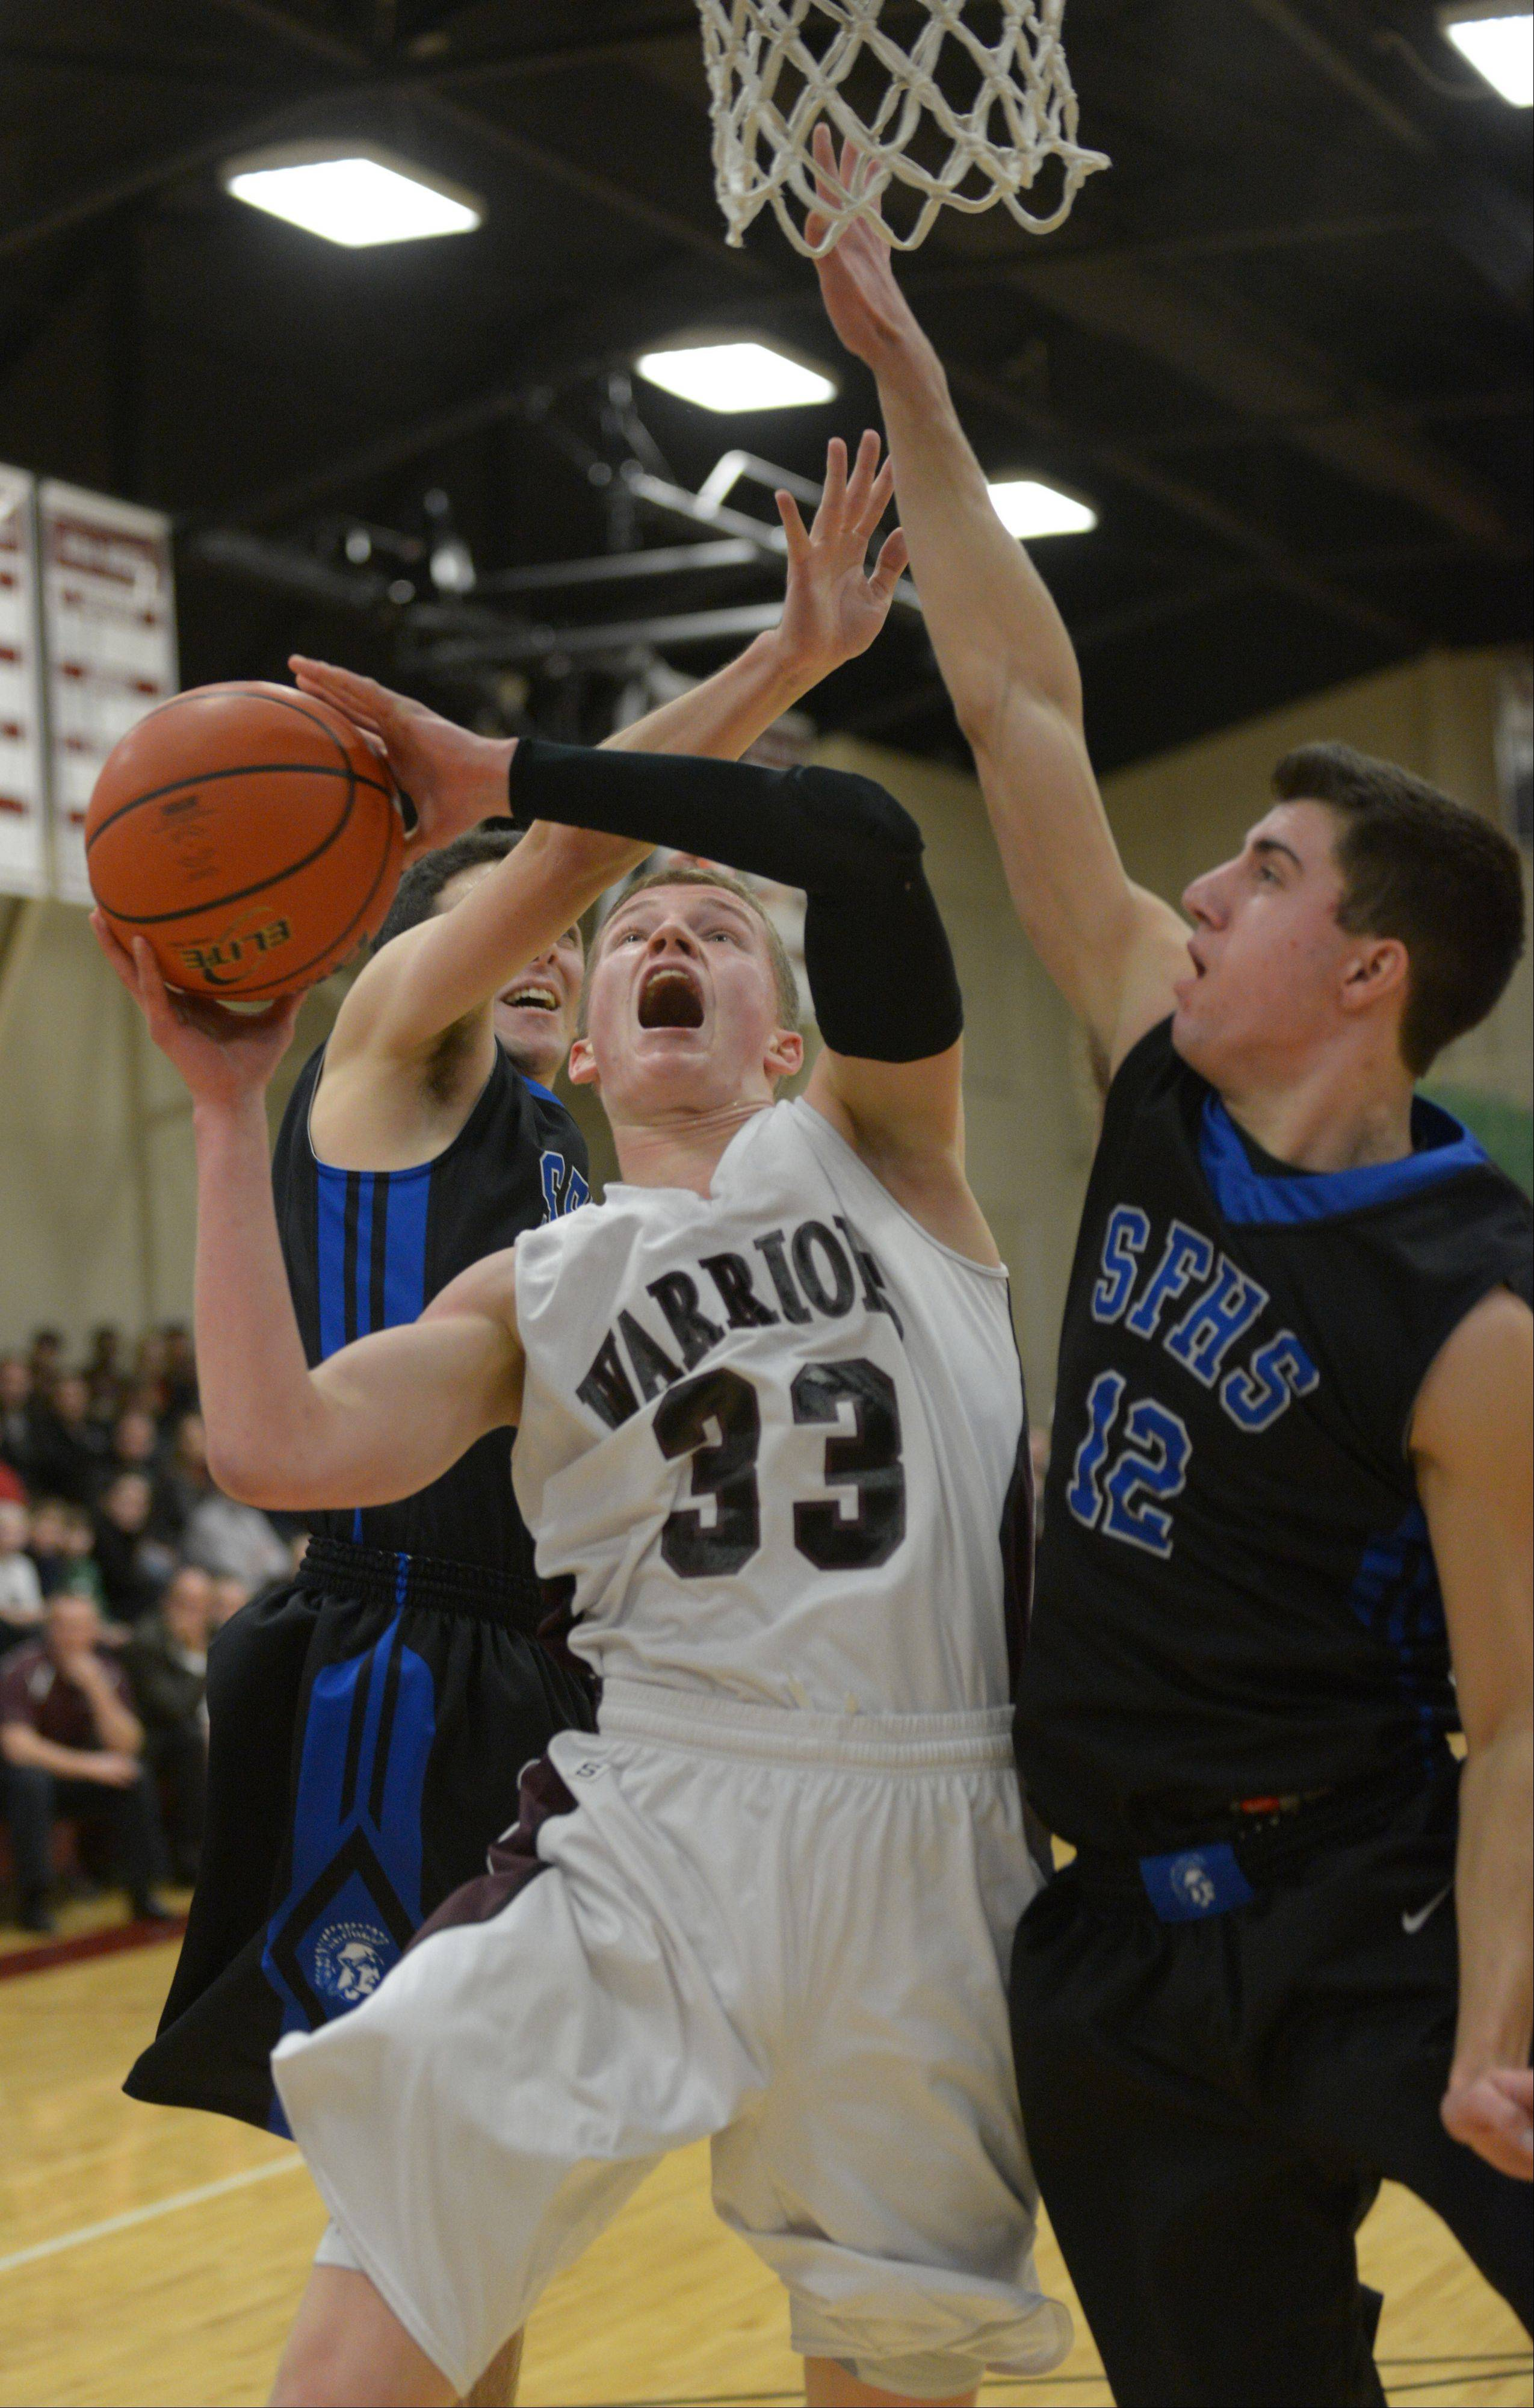 Brandon Ruggles,left, of Wheaton puts up a shot as Tim Zettinger of St. Francis attempts to block.